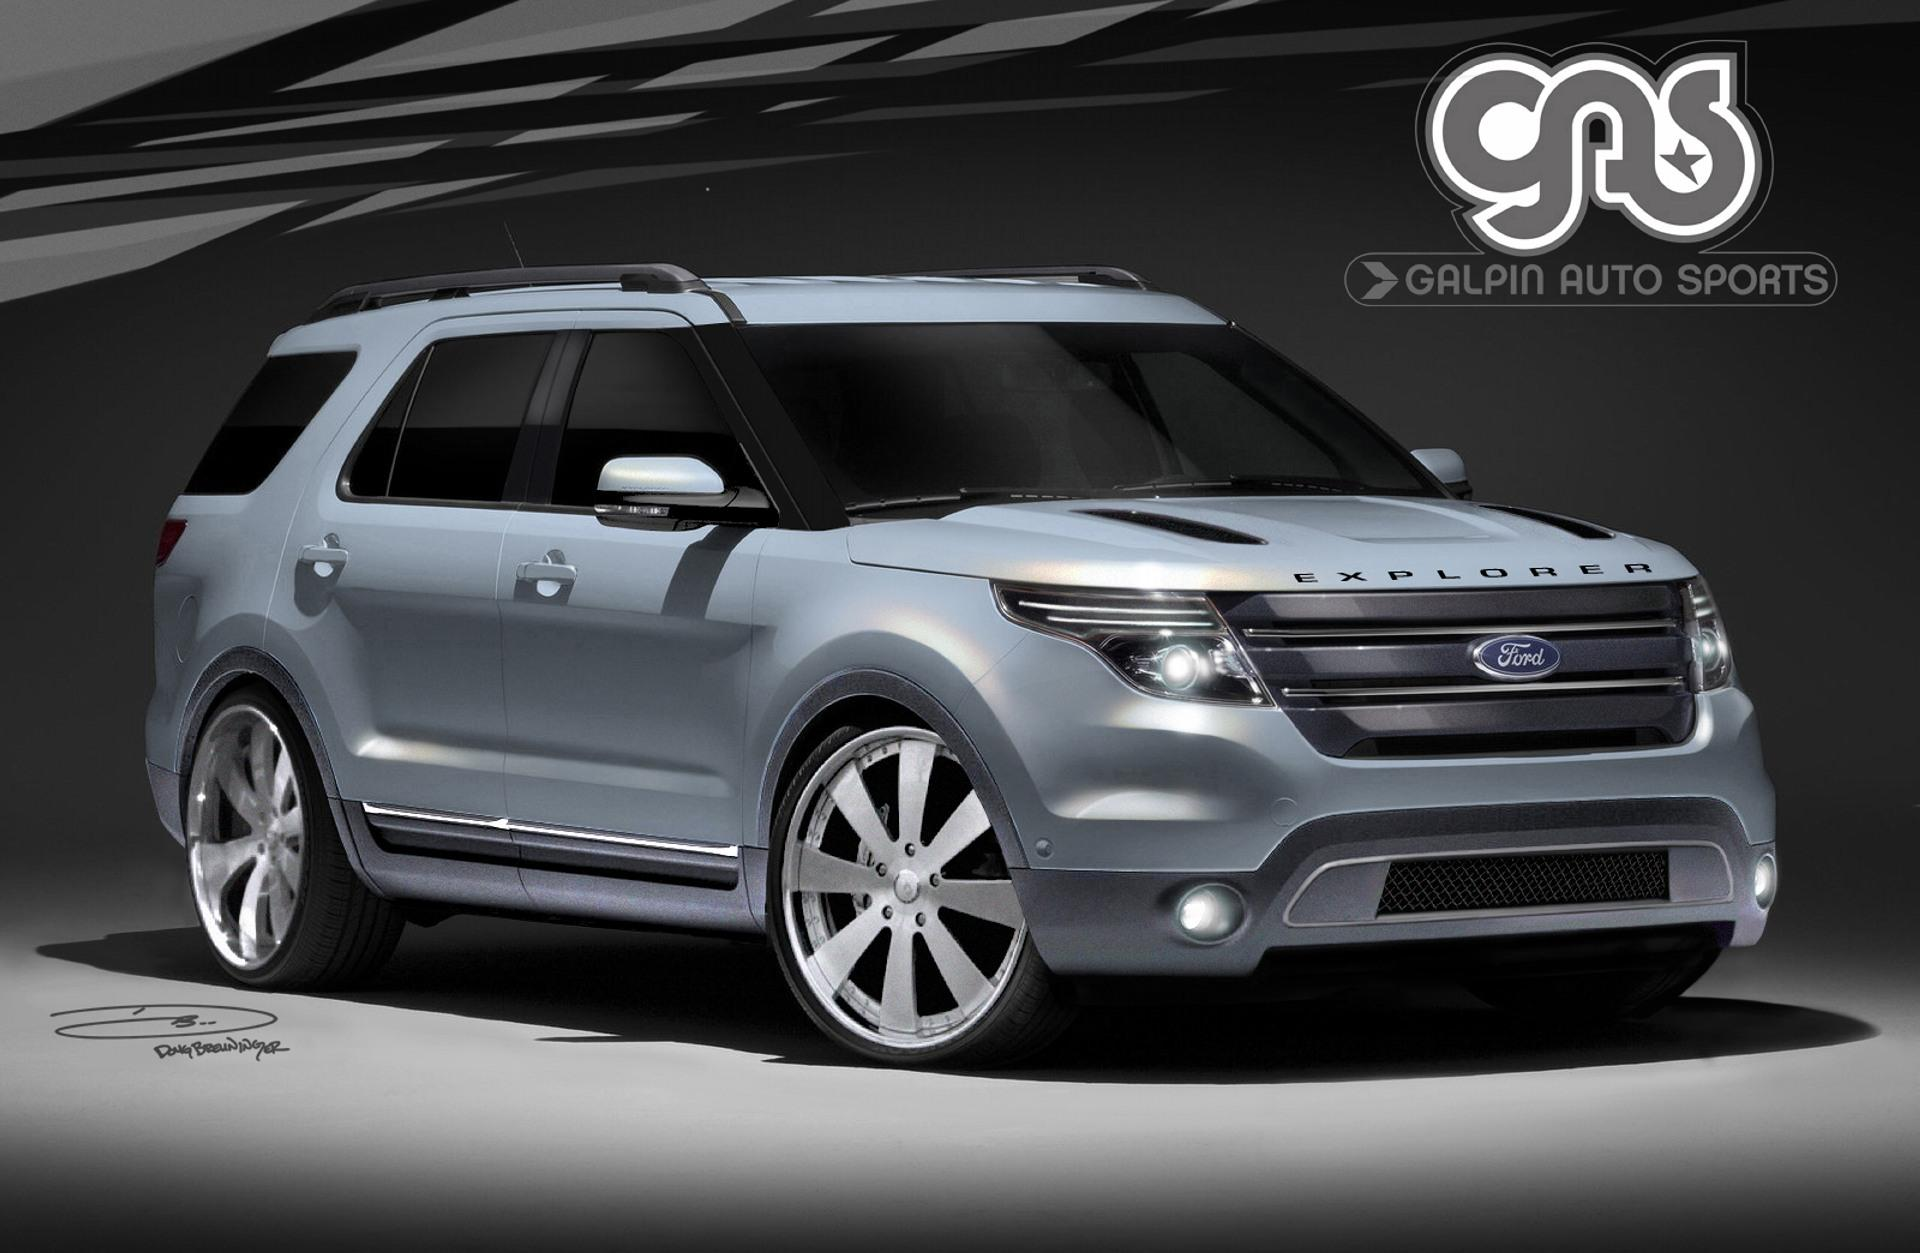 2011 Ford Explorer by Galpin Auto Sports News and Information